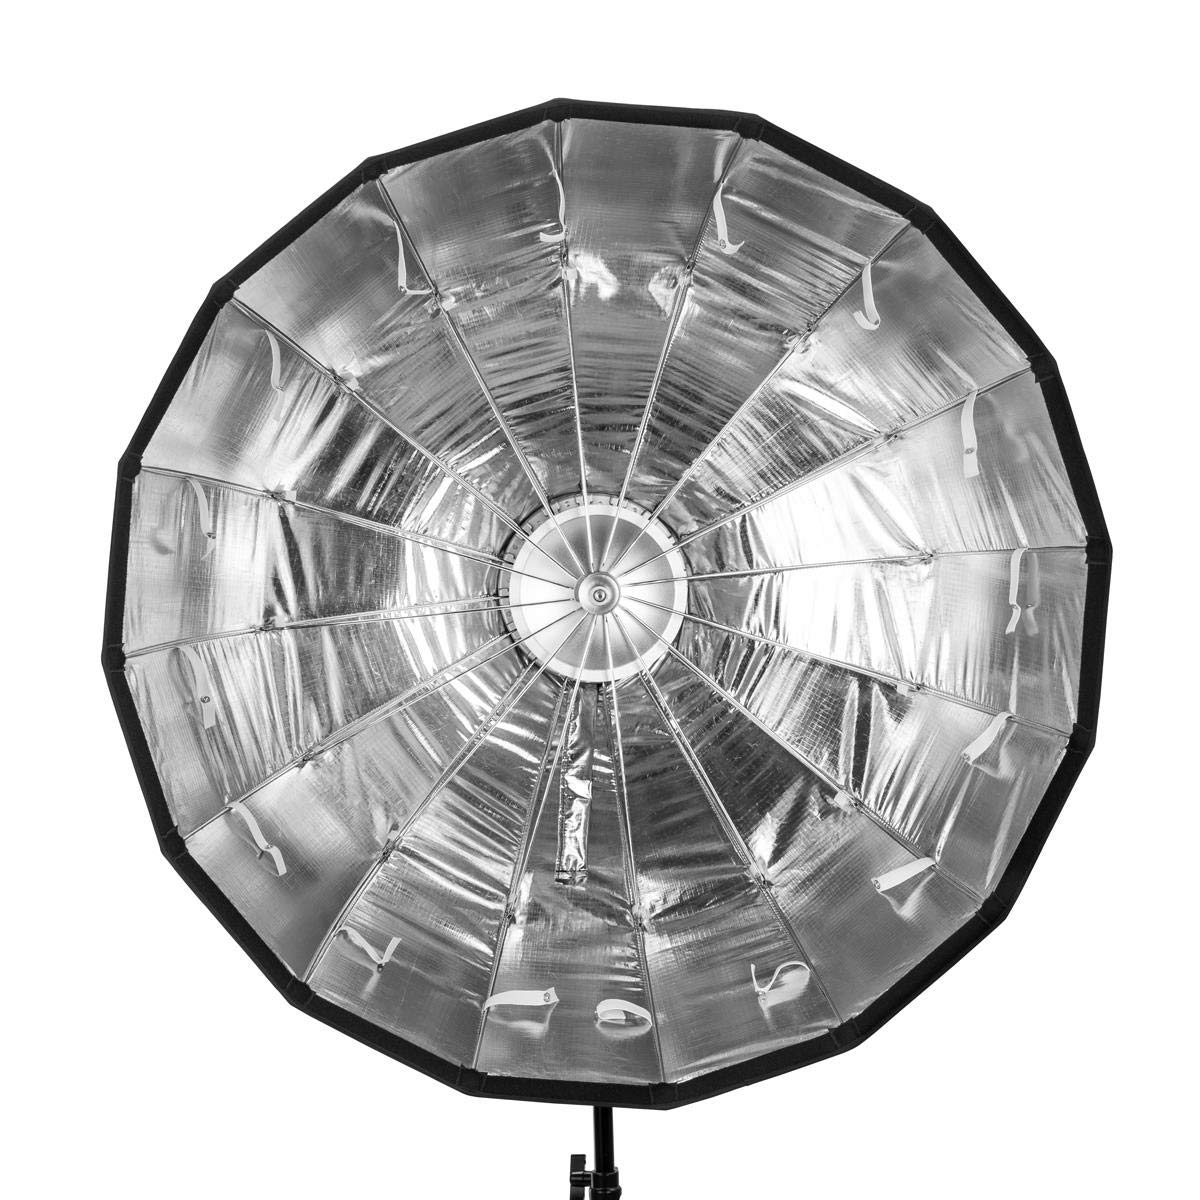 Glow EZ Lock Collapsible Silver Beauty Dish (34'') by Glow (Image #6)